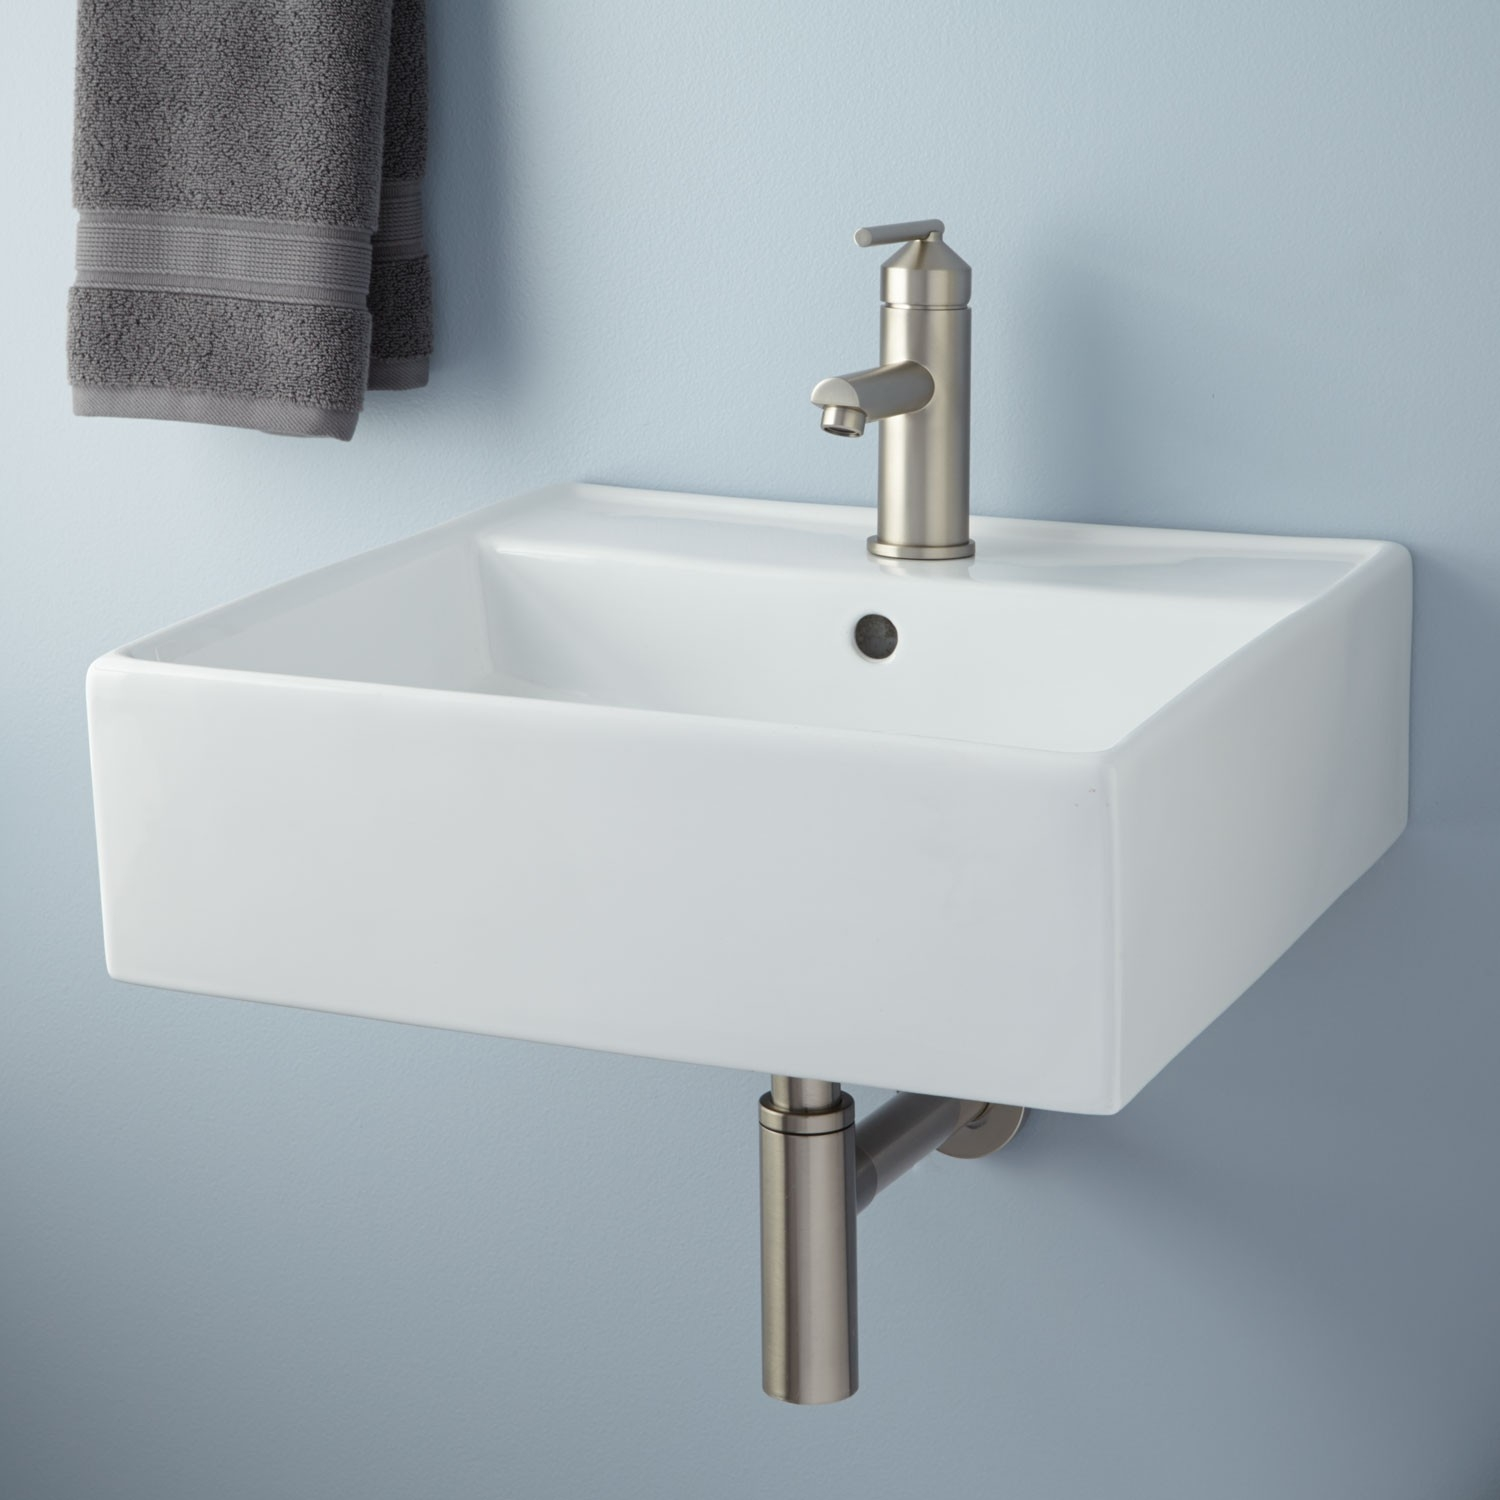 Wall Mount Bathroom Sinks White